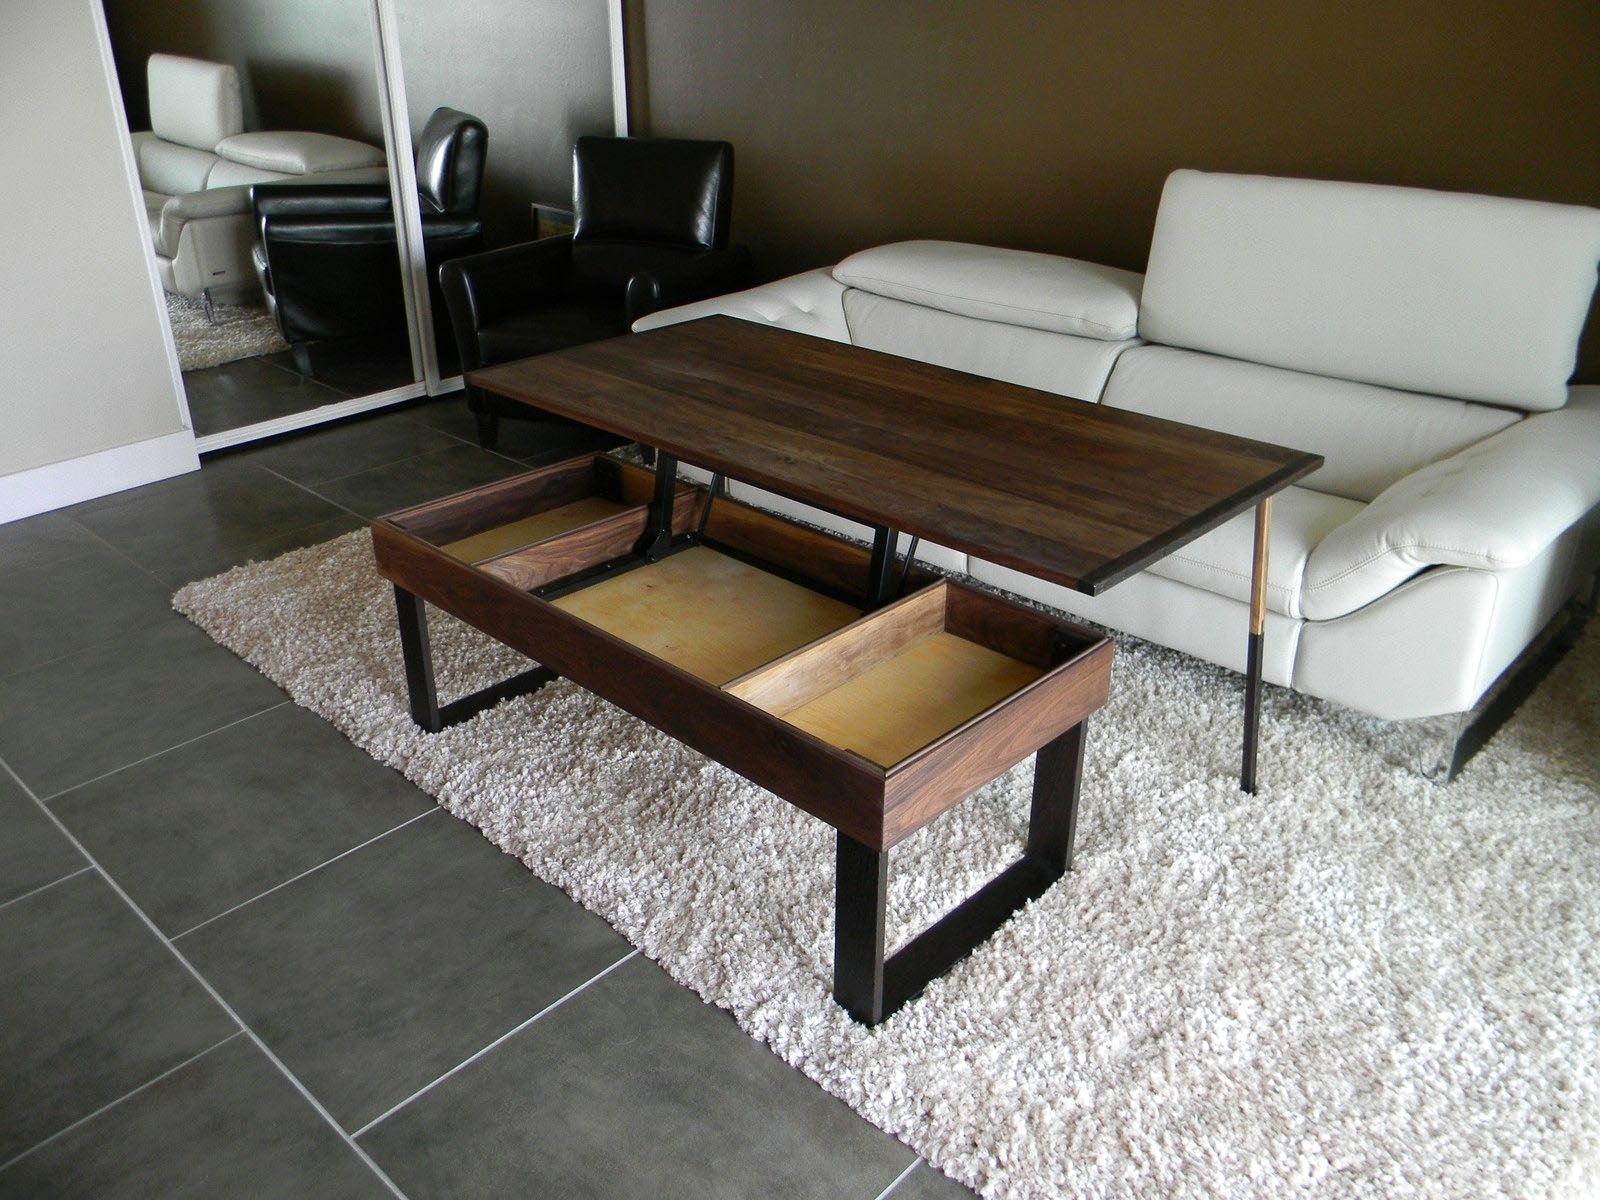 Coffee Table That Becomes Dining Table Convertible Coffee Table To Dining Table Ikea Coffee